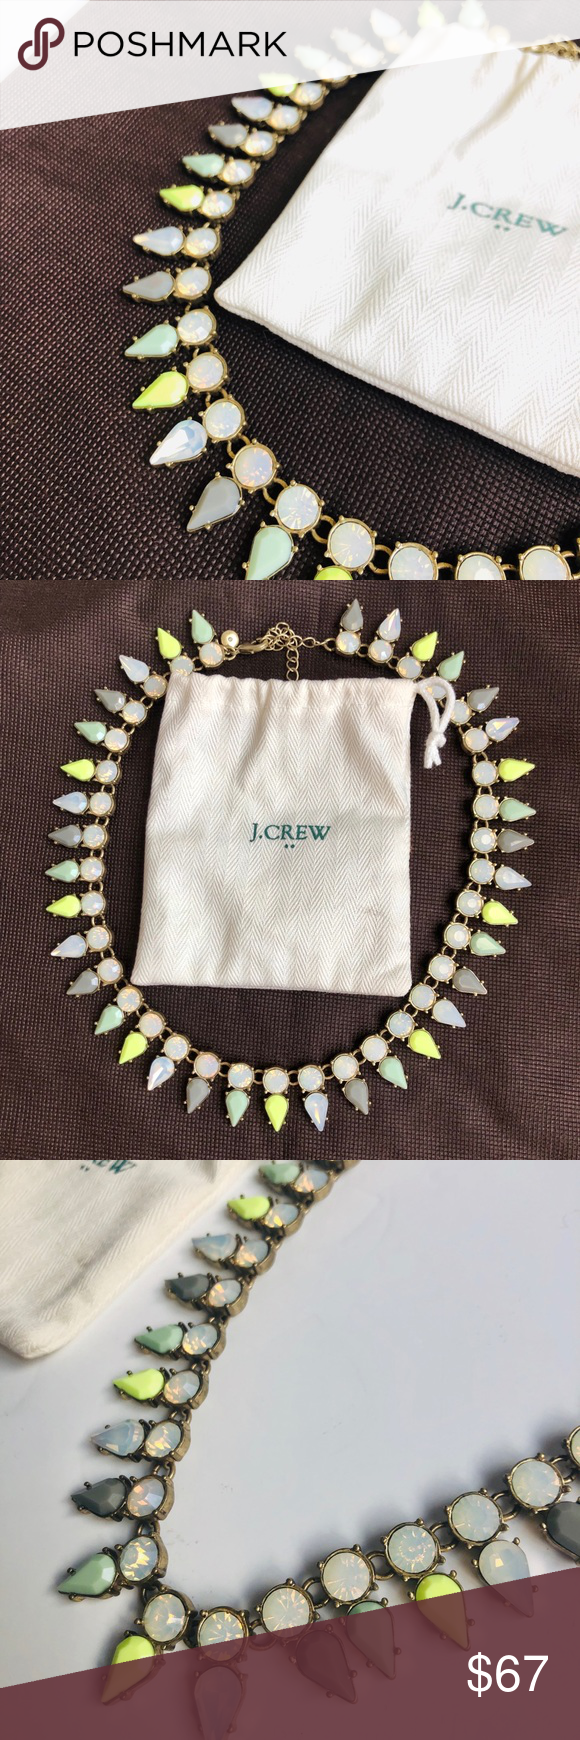 J Crew Spike Necklace NWOT Great pastel color palette for versatility and an added pop of color! Mixture of brass, epoxy and glass. Light gold of playing. Length approx 16 with a 2 1/4 extender chain. NWOT. Never worn. Mint condition. Ask questions! J. Crew Jewelry Necklaces #colorpalettecopies